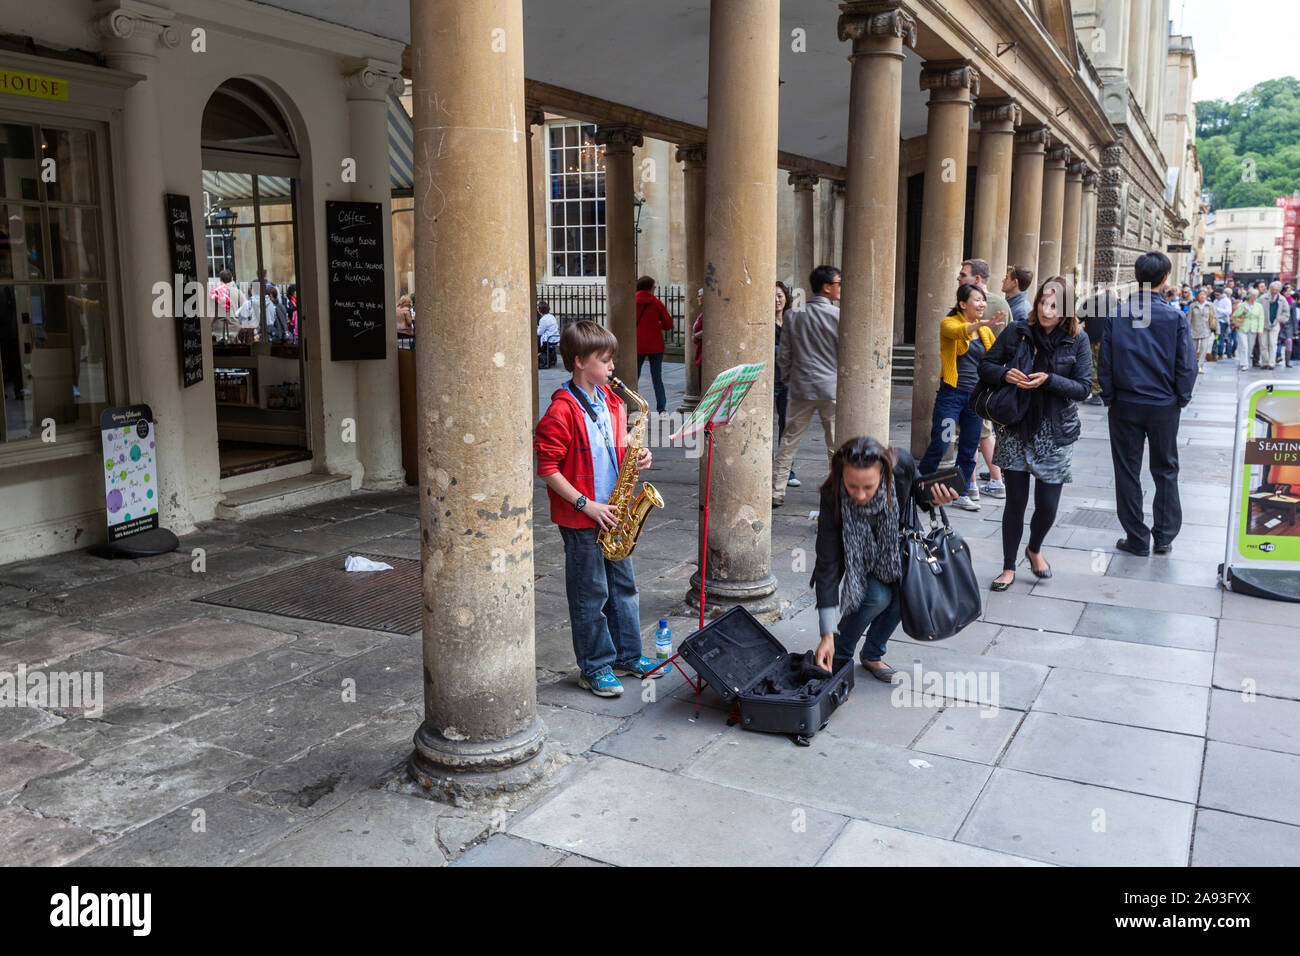 woman-giving-money-to-a-young-boy-busker